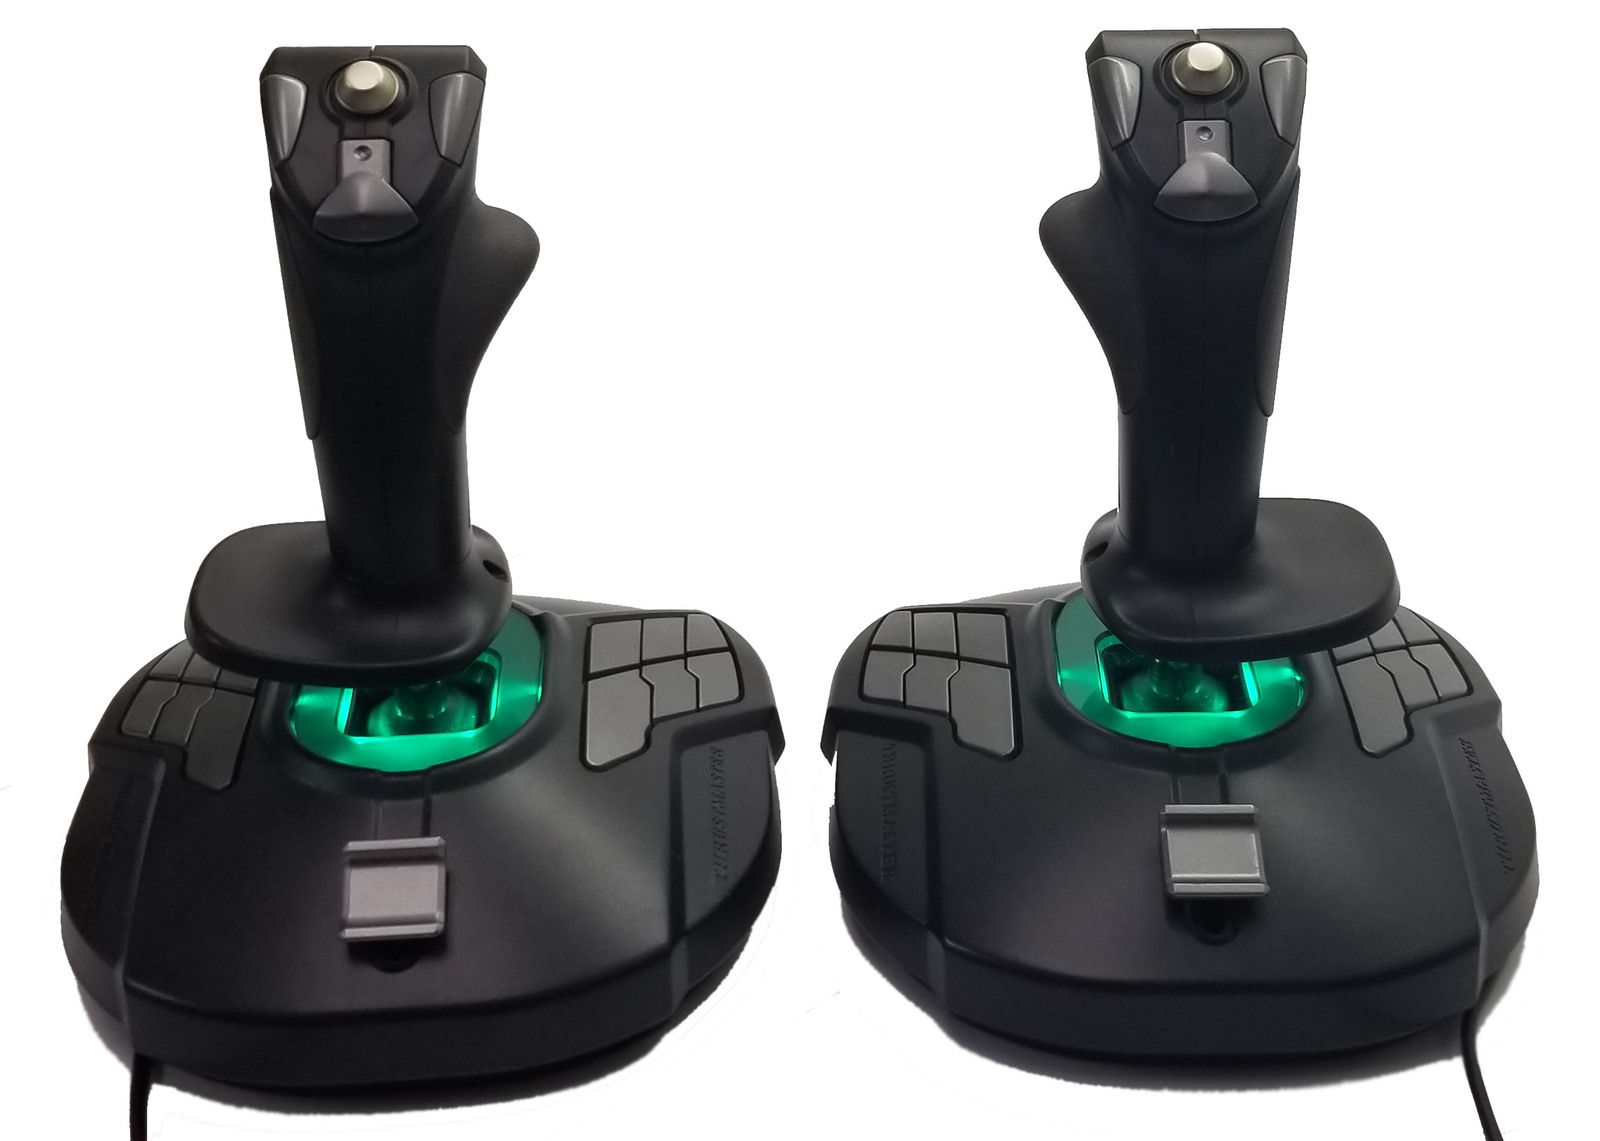 Thrustmaster T.16000M V.1 HOSAS Flight Stick 2 Pack (2960706) Bin:10